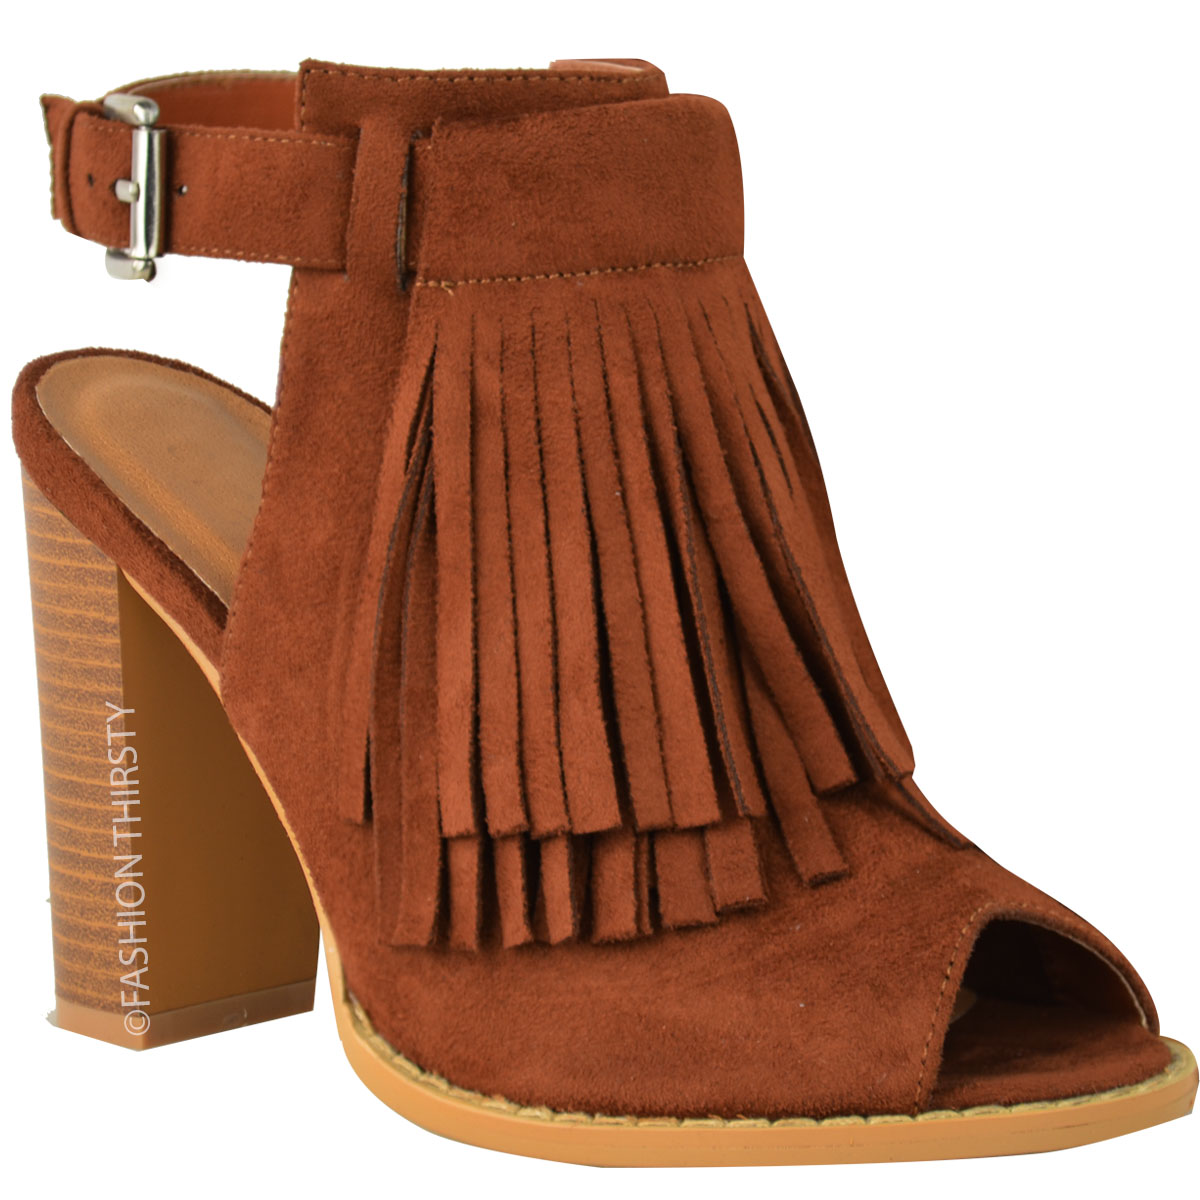 Minnetonka Mens and Womens Fringe Boots. We have several styles of men's and women's fringe boot moccasins to choose from. Fringe boots are extremely comfortable and often a popular choice for trappers, mountain men, and exotic dancers.